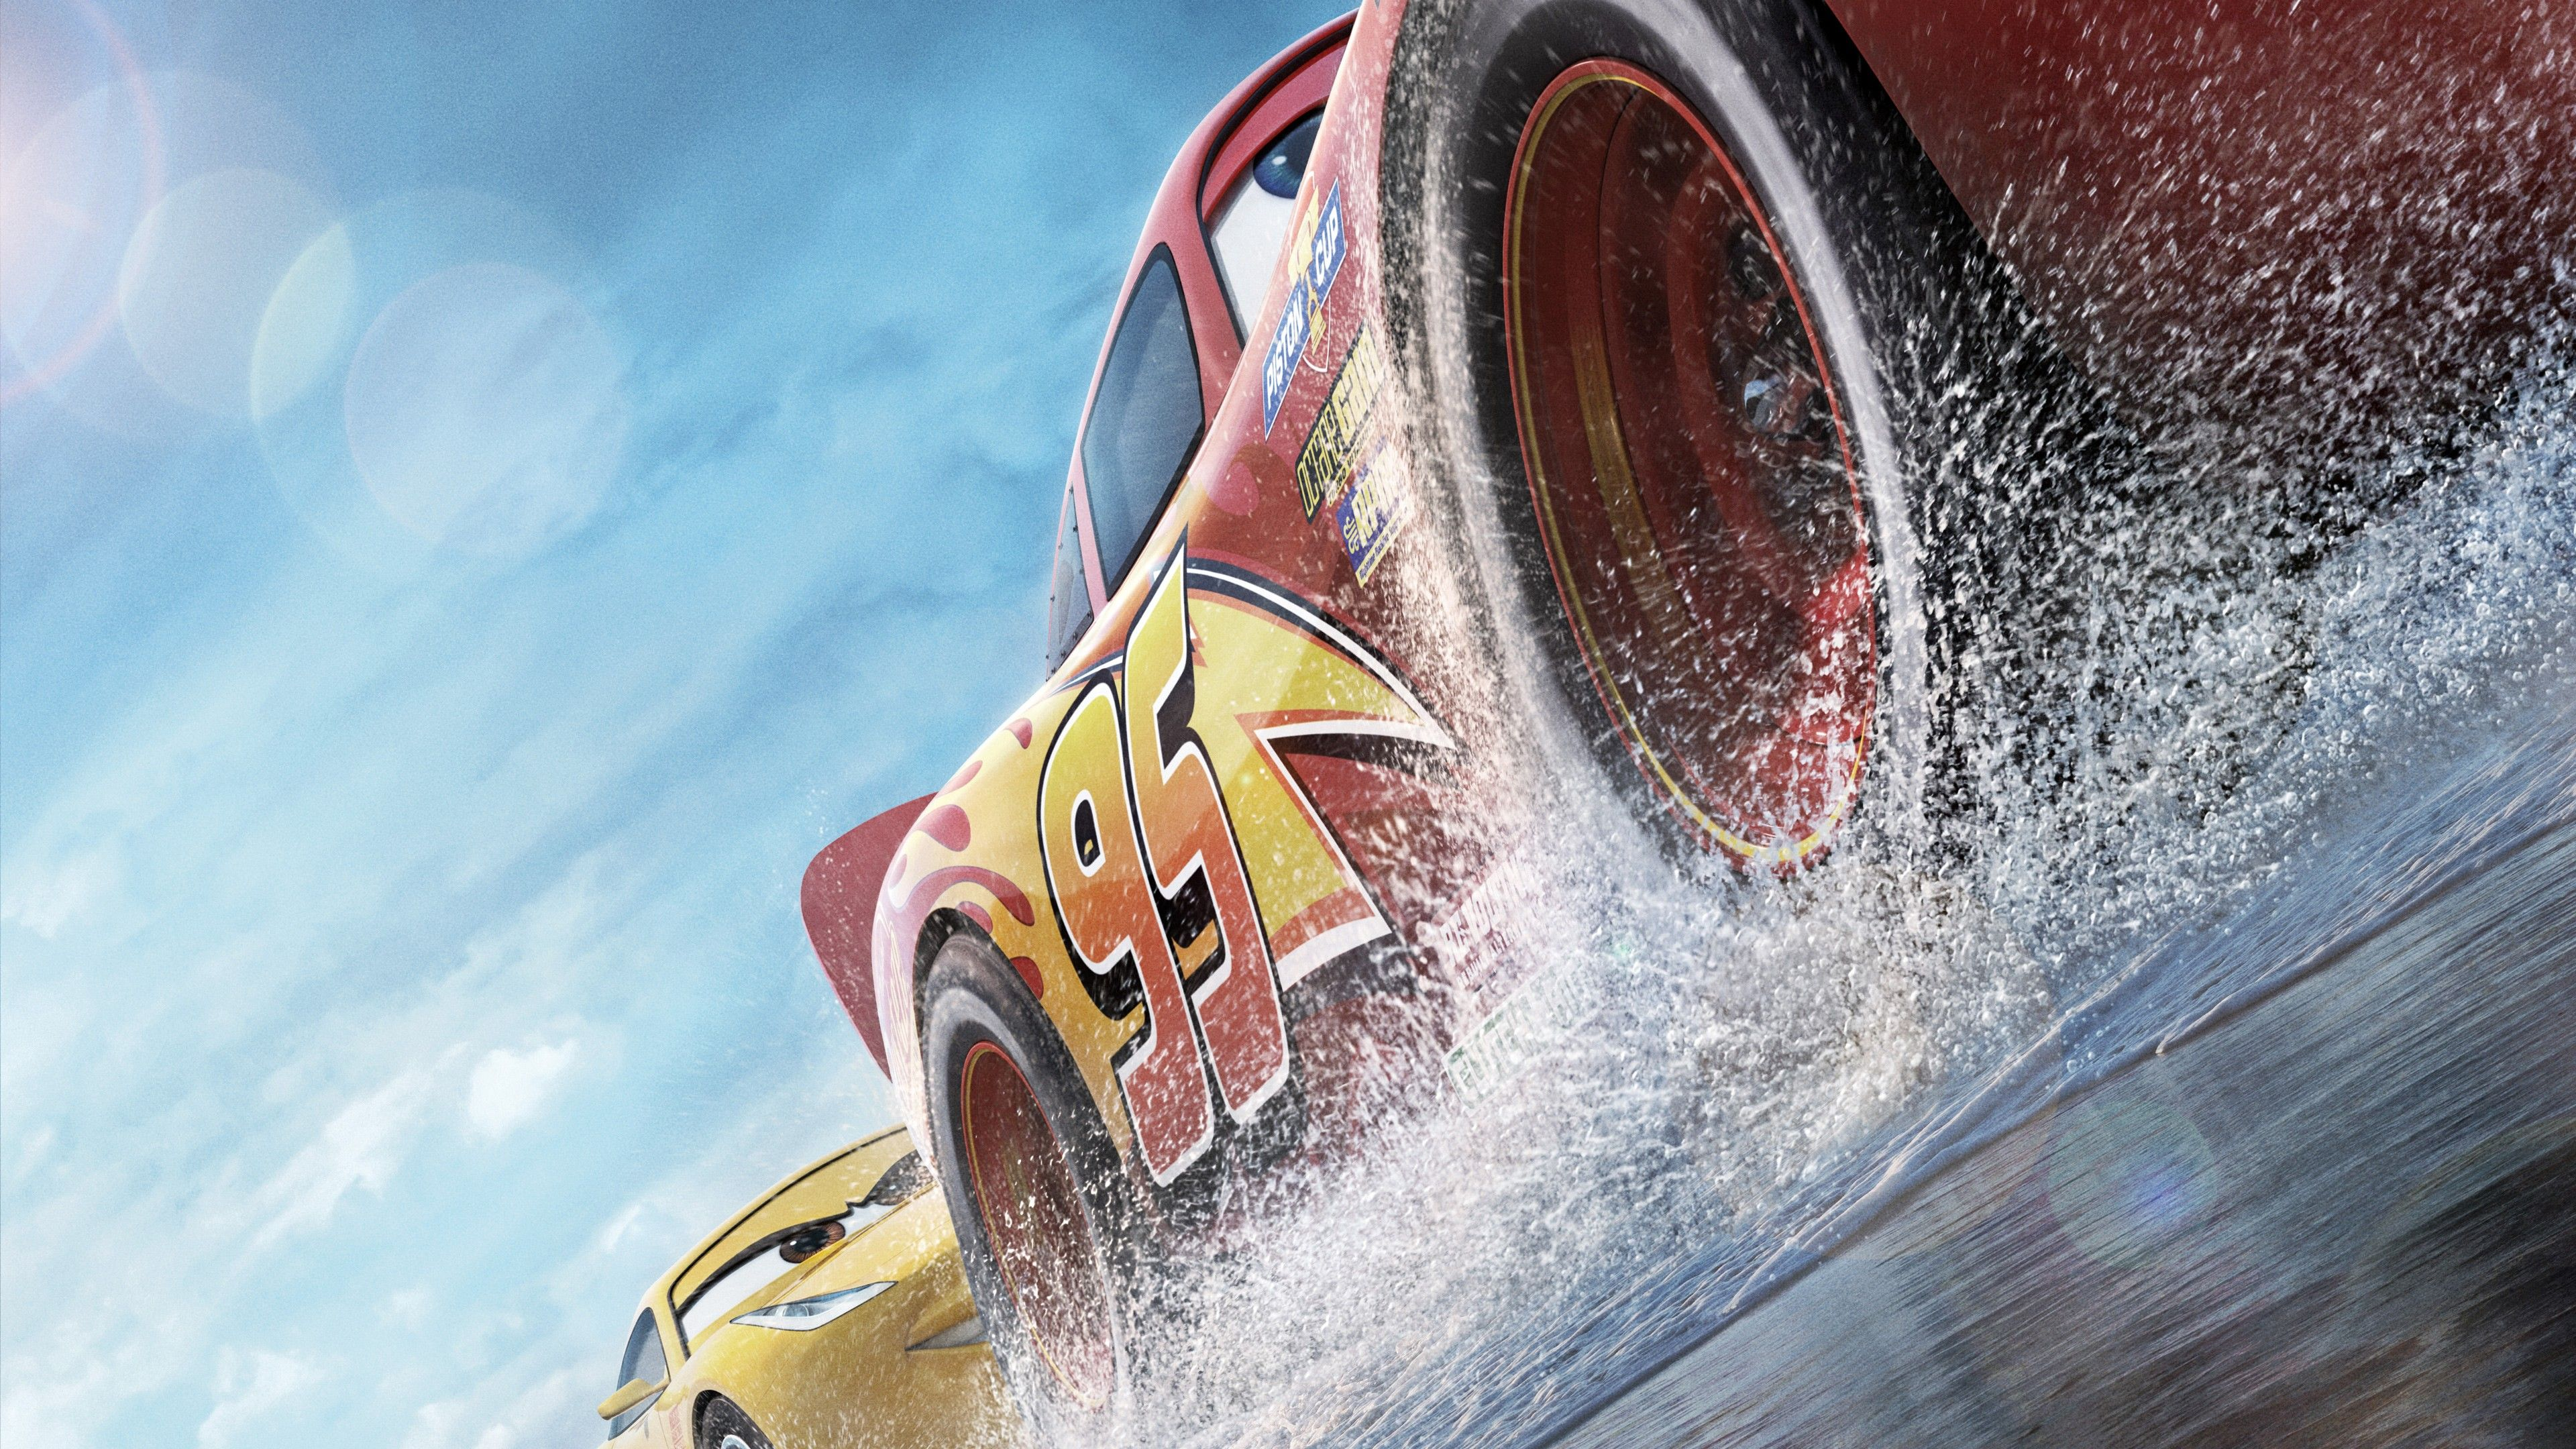 3840x2160 Free Download Cars 3 Pixar Animation Wallpaper for Desktop and ...